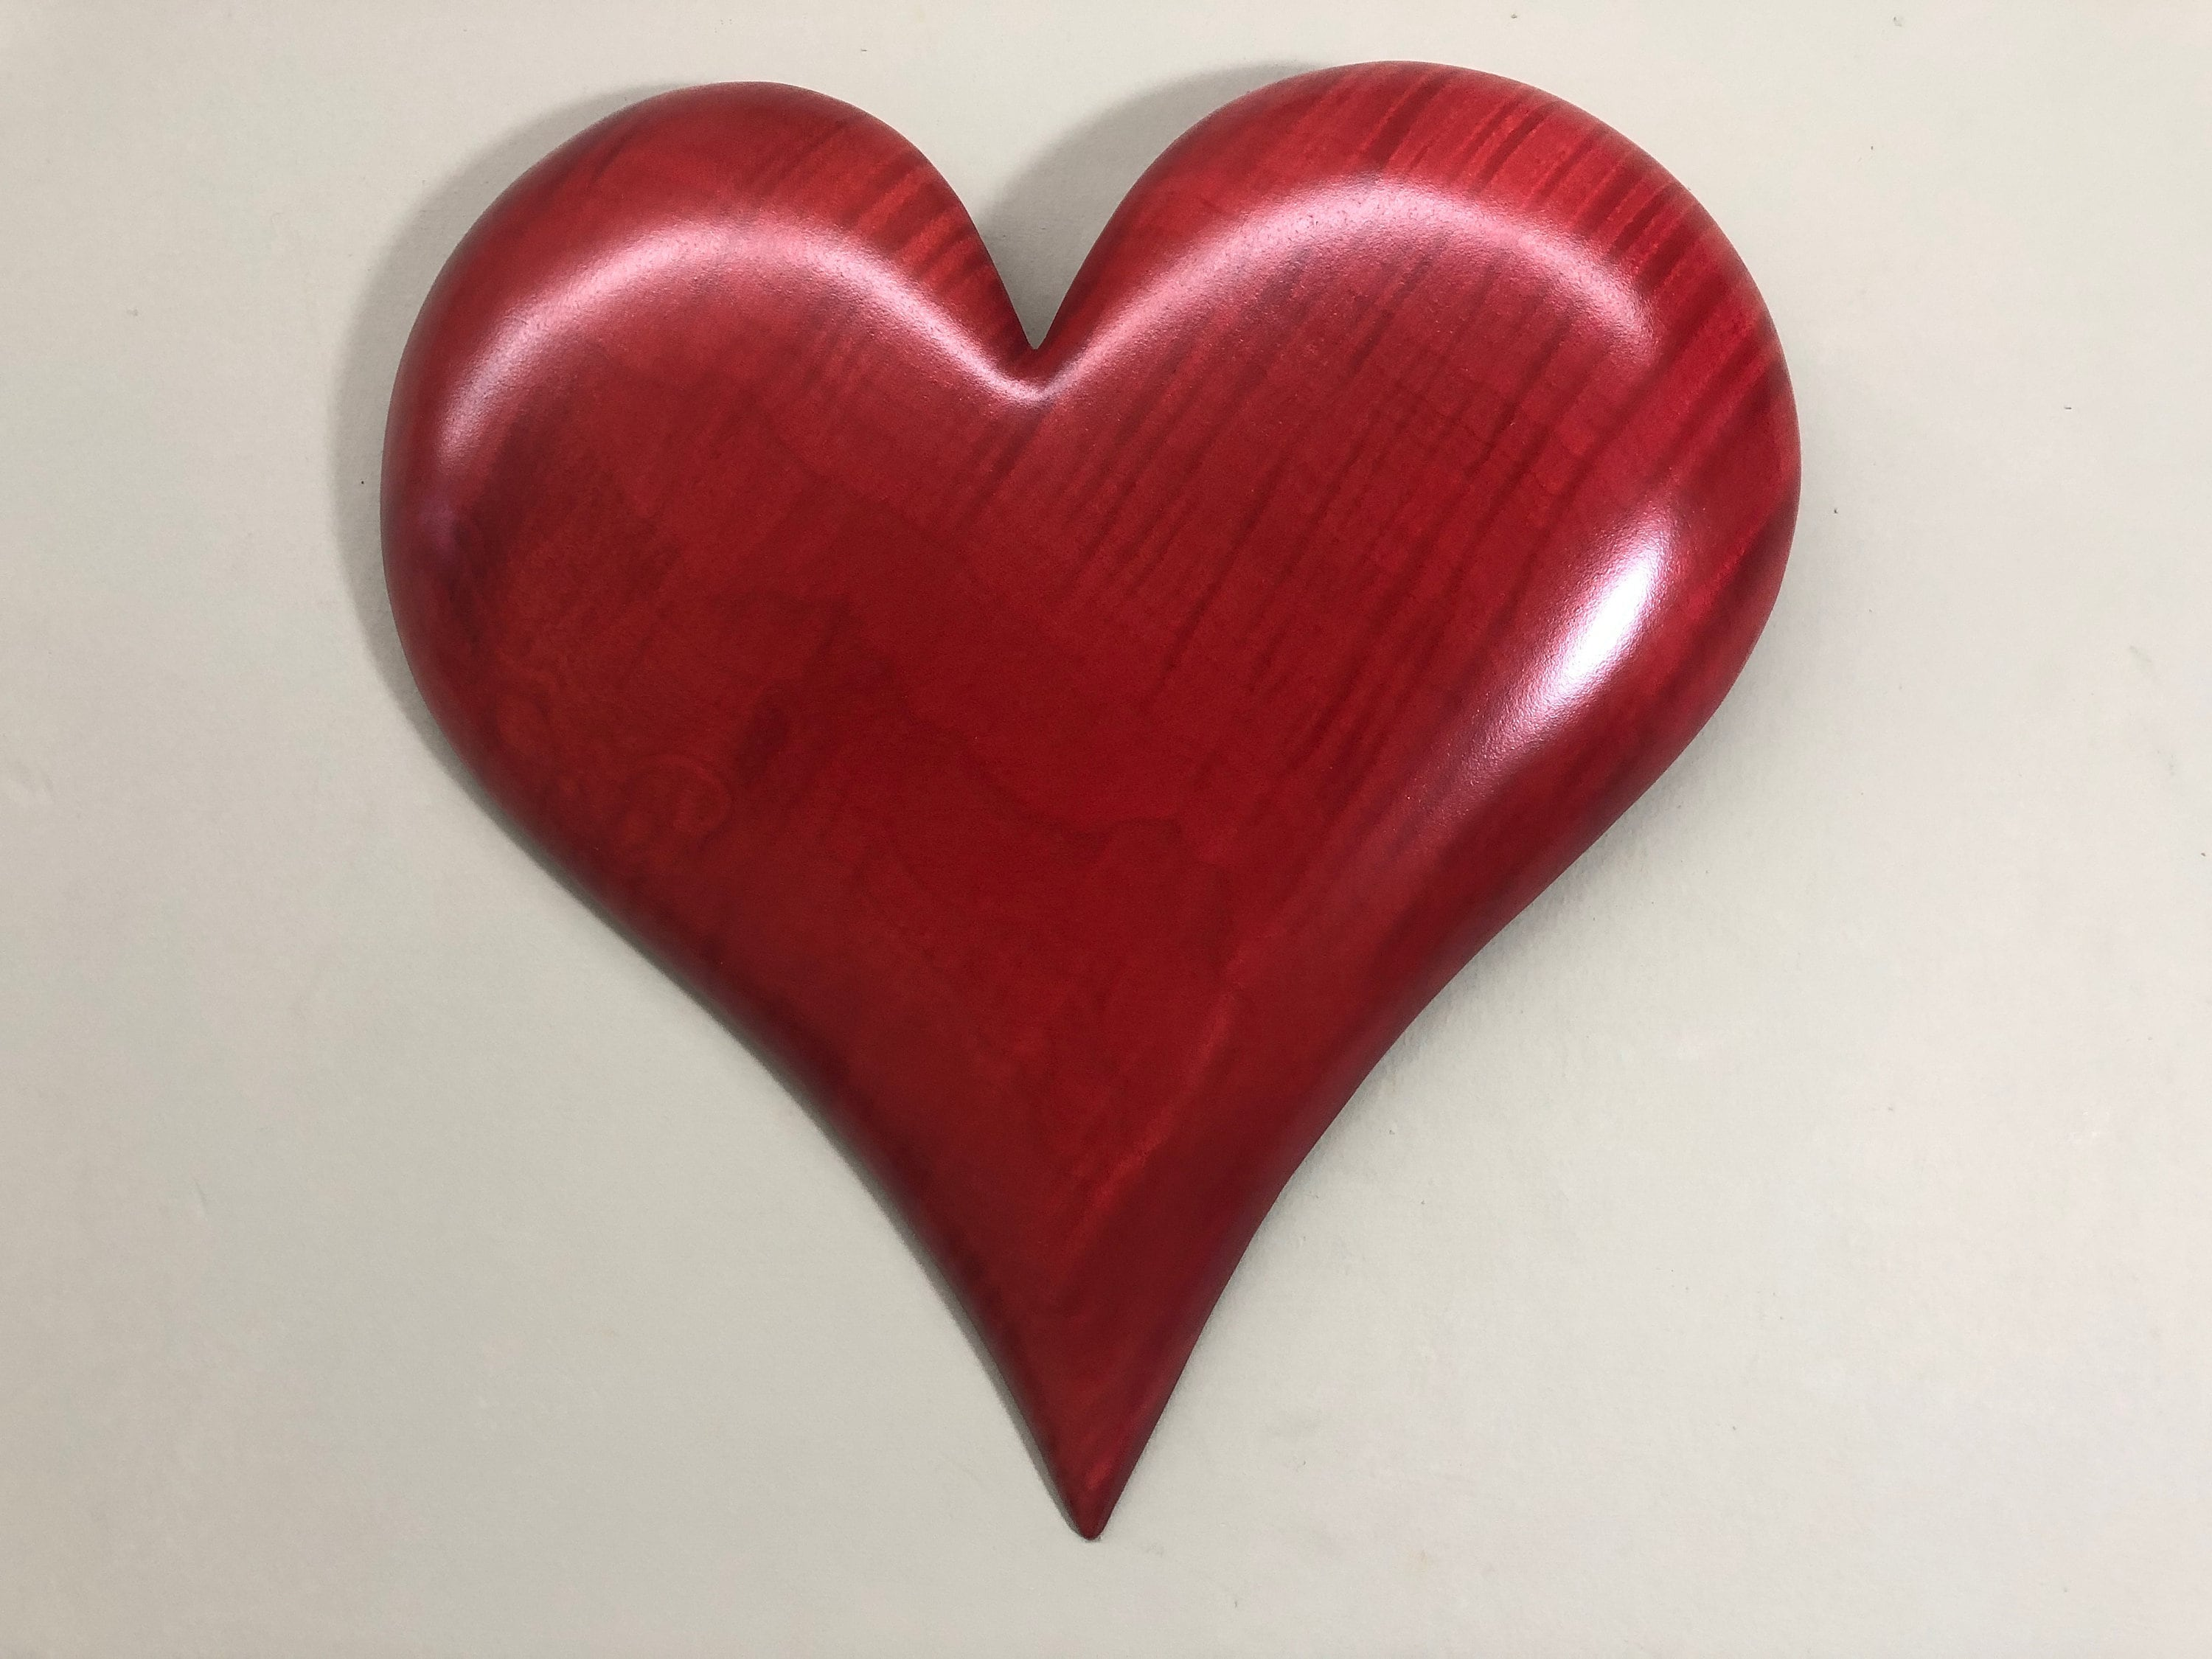 Red personalized valentine heart gift wood carving present